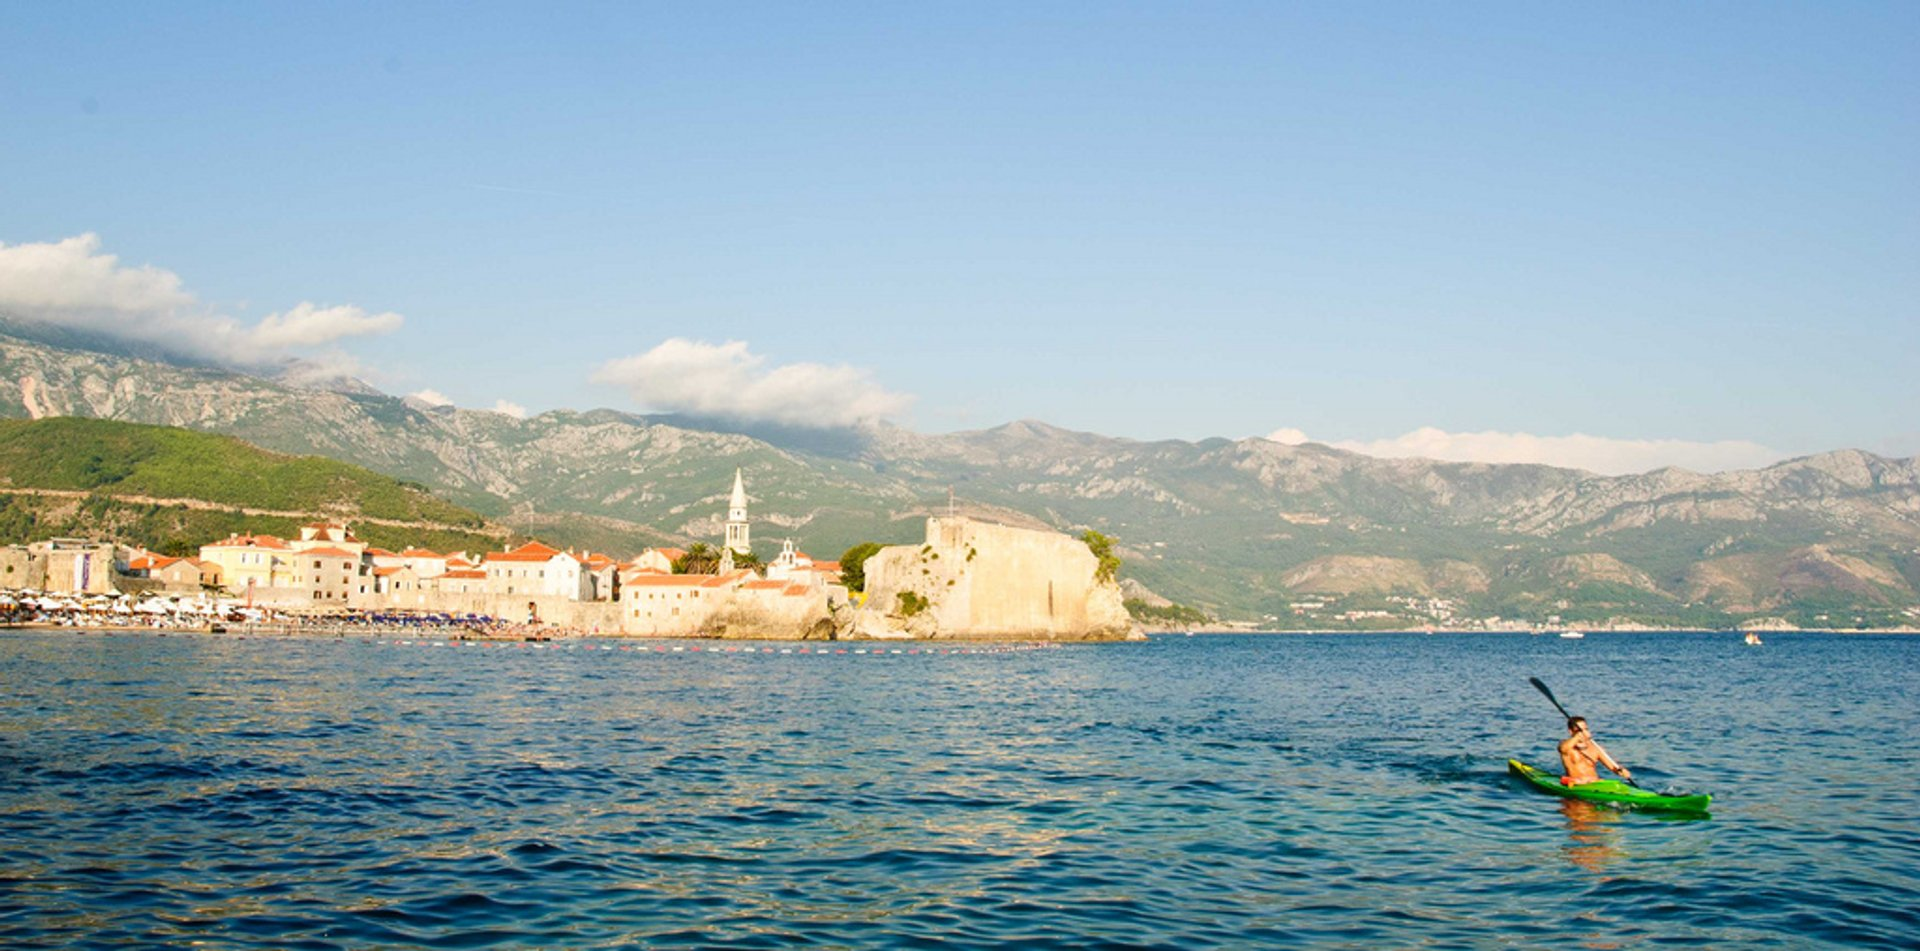 Kayaking in Budva 2019